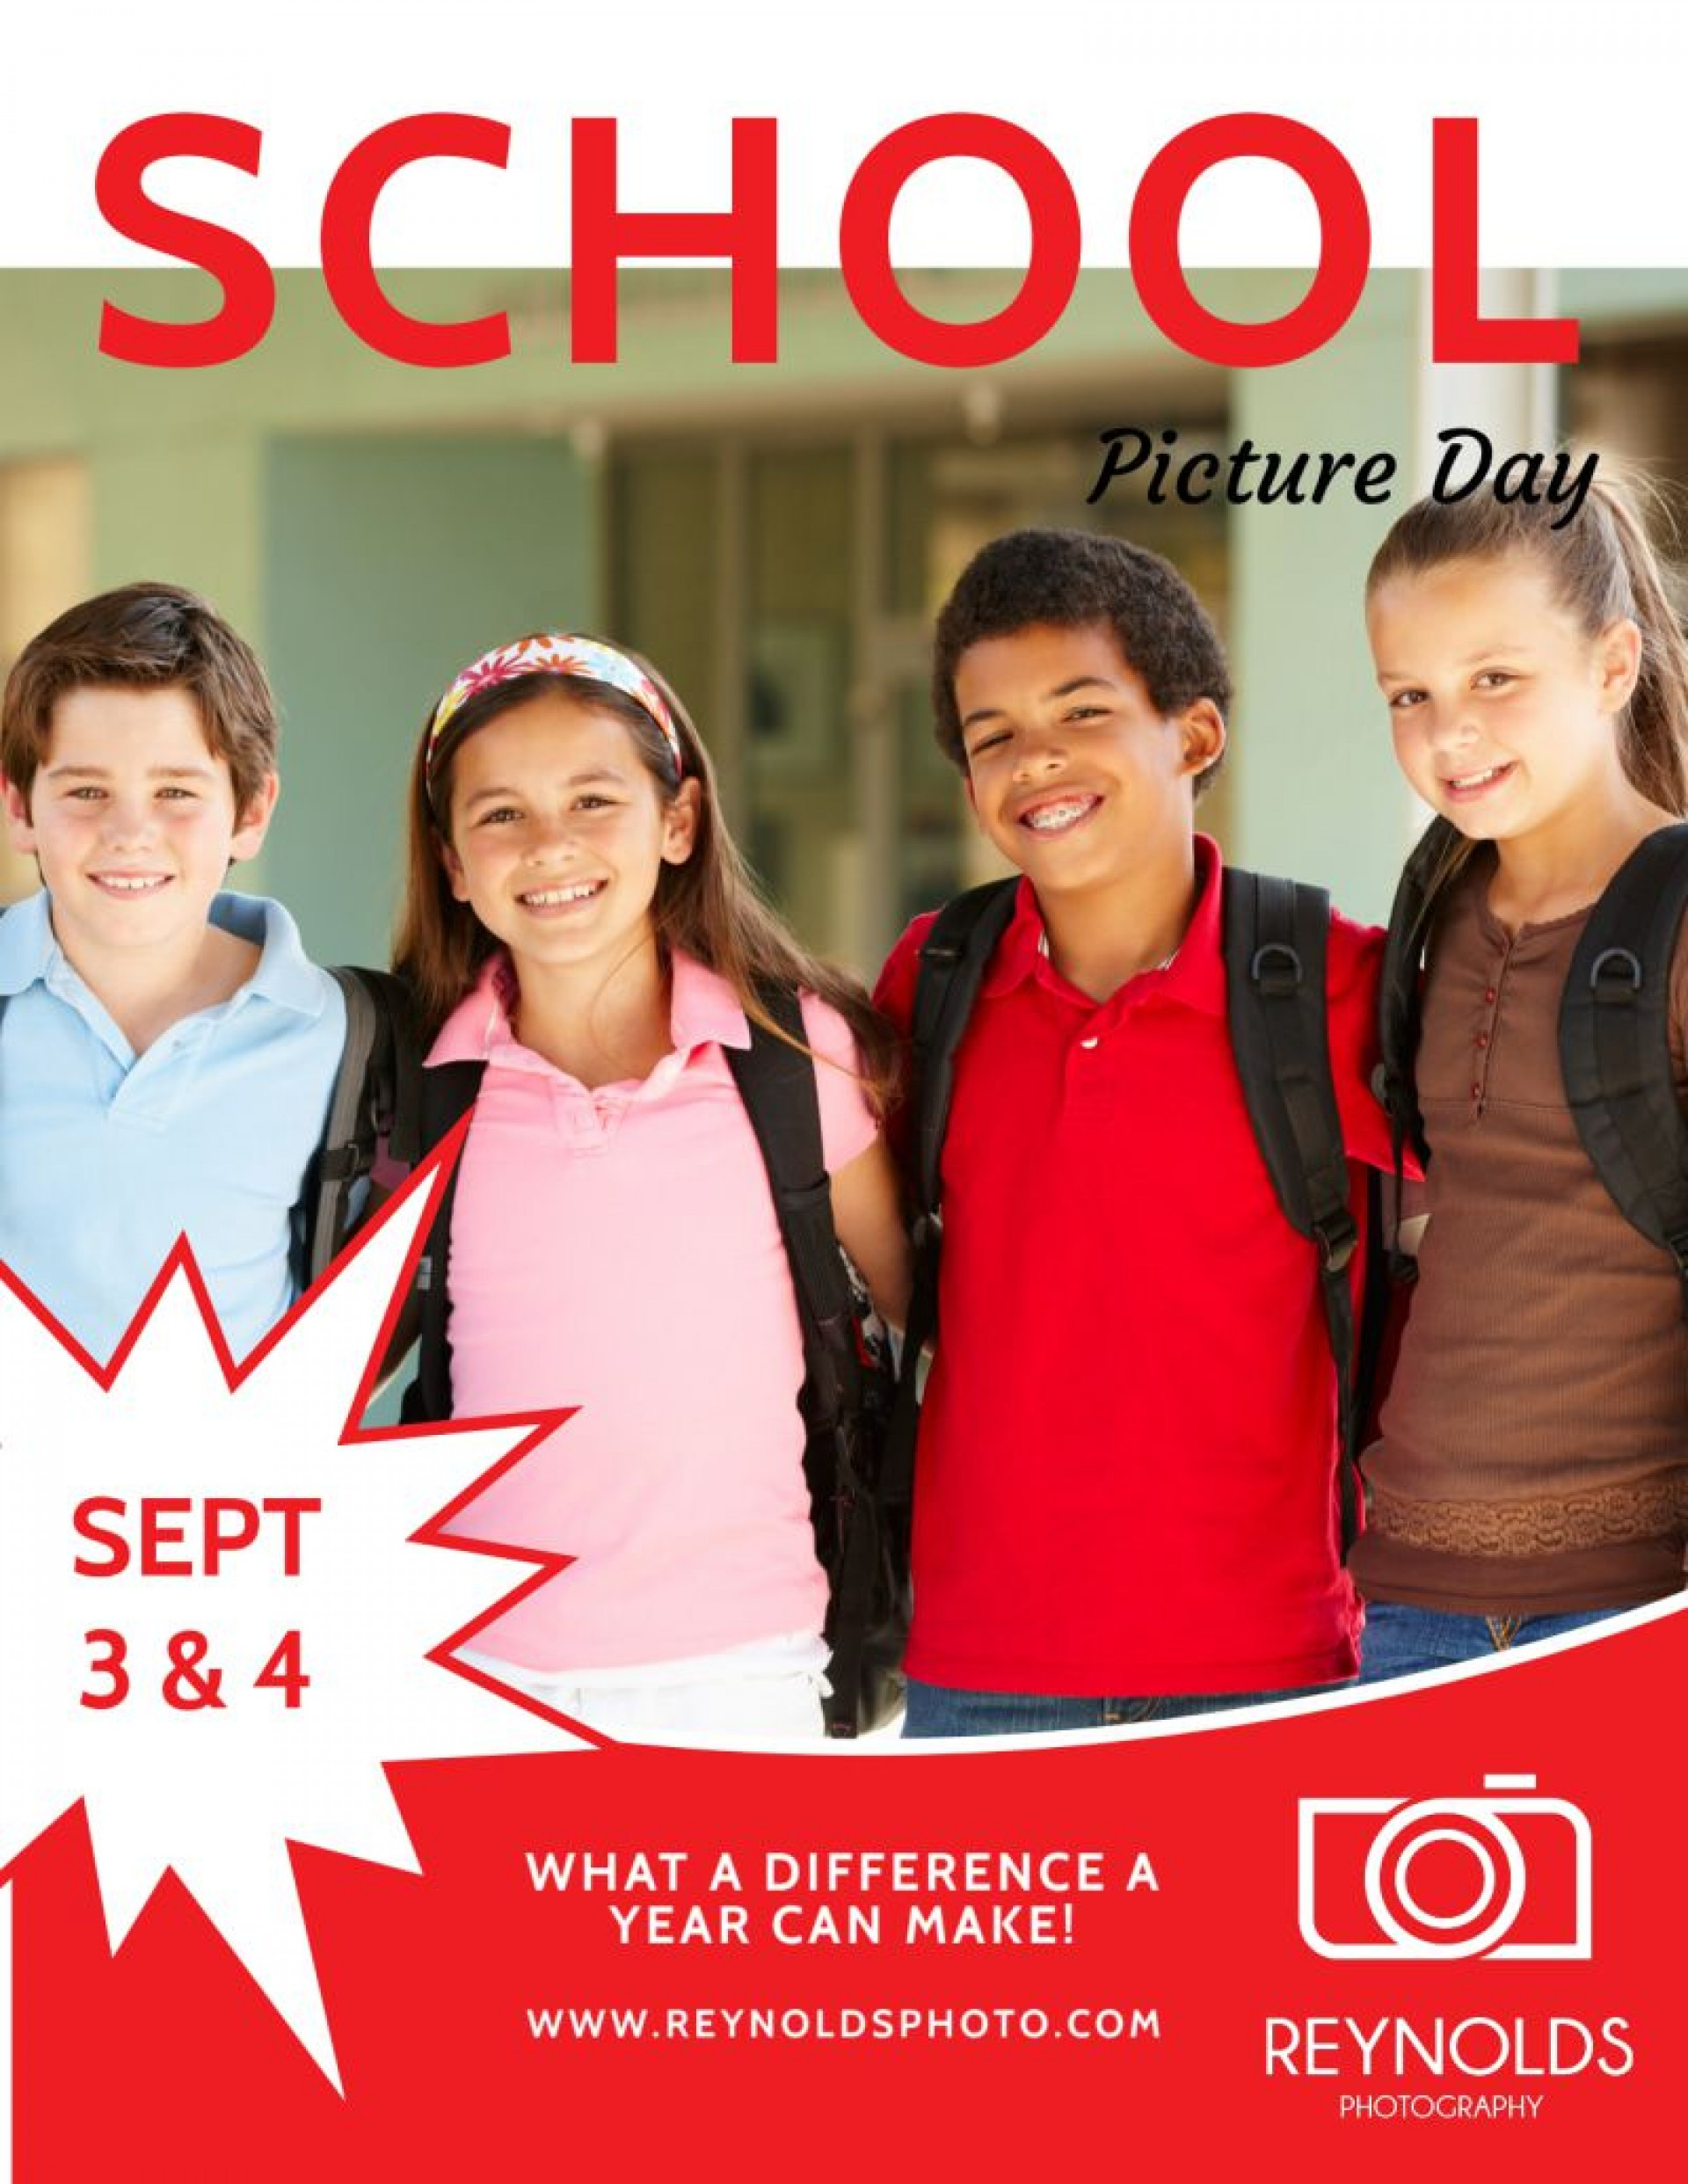 006 Exceptional School Picture Day Flyer Template Concept  Free1920